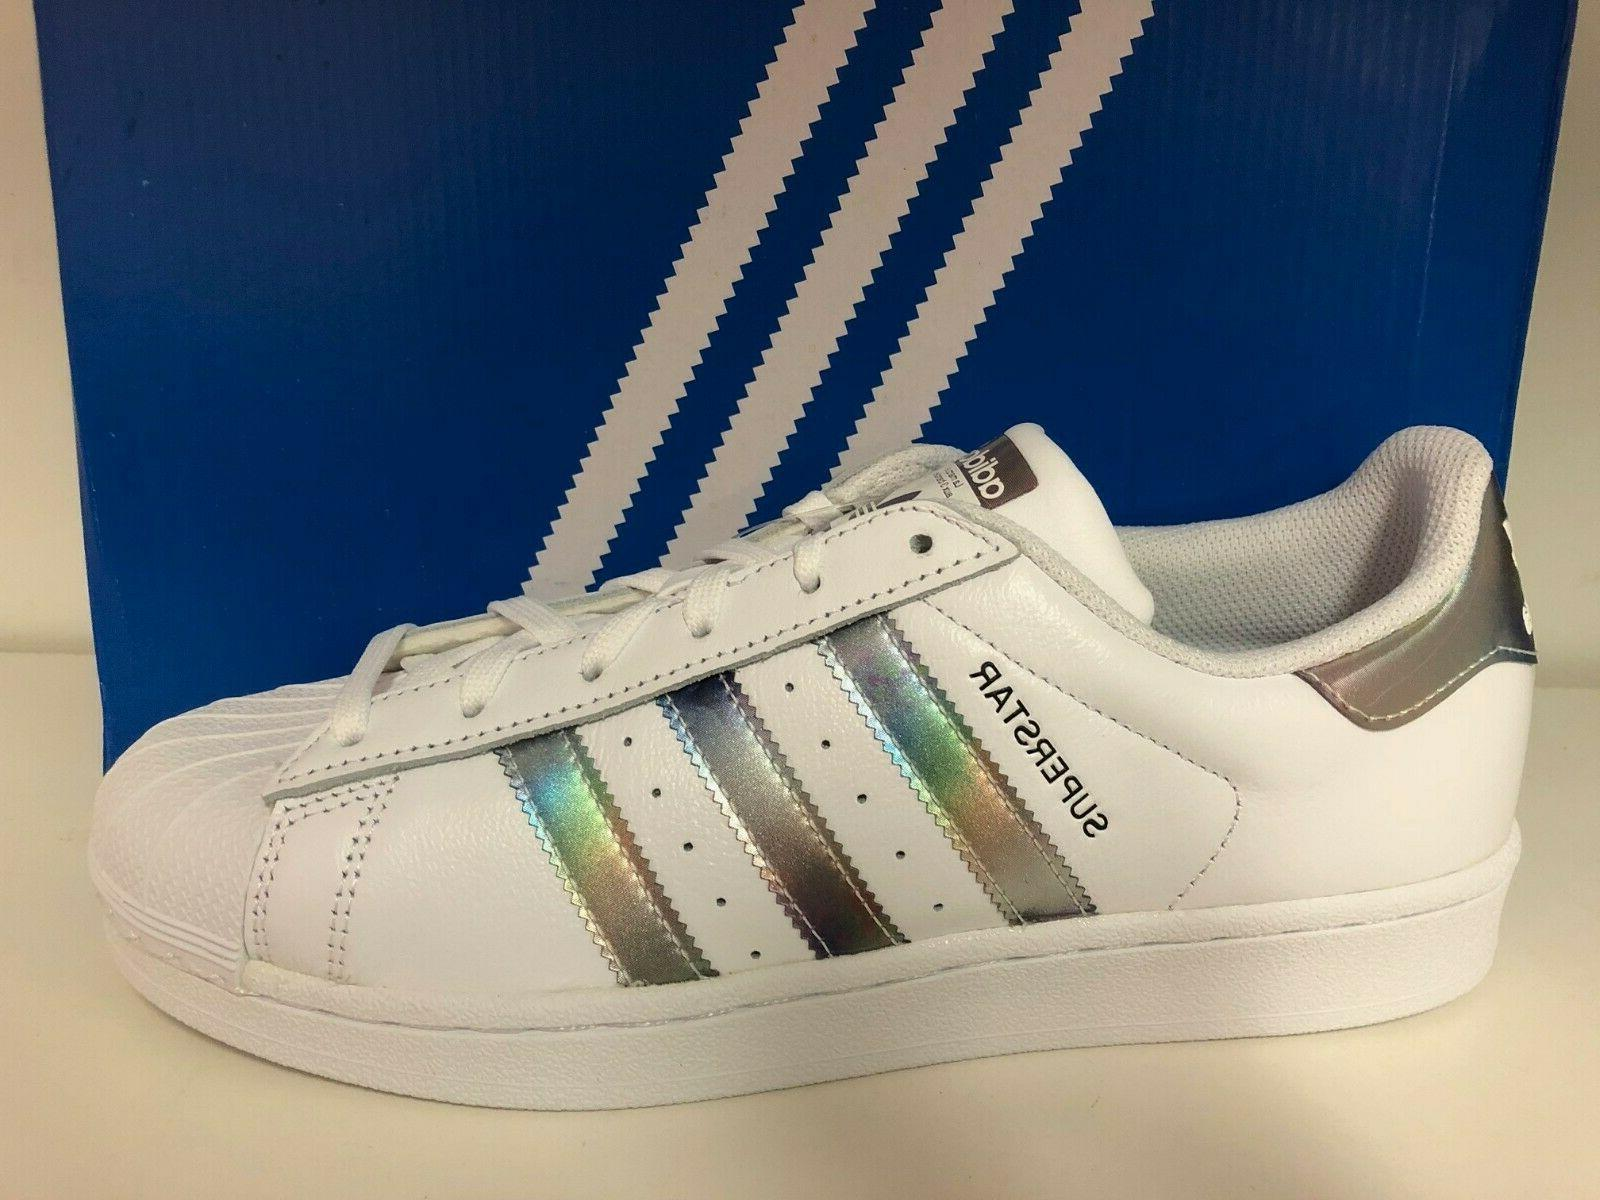 Adidas Originals Superstar J Shell Size Shoes